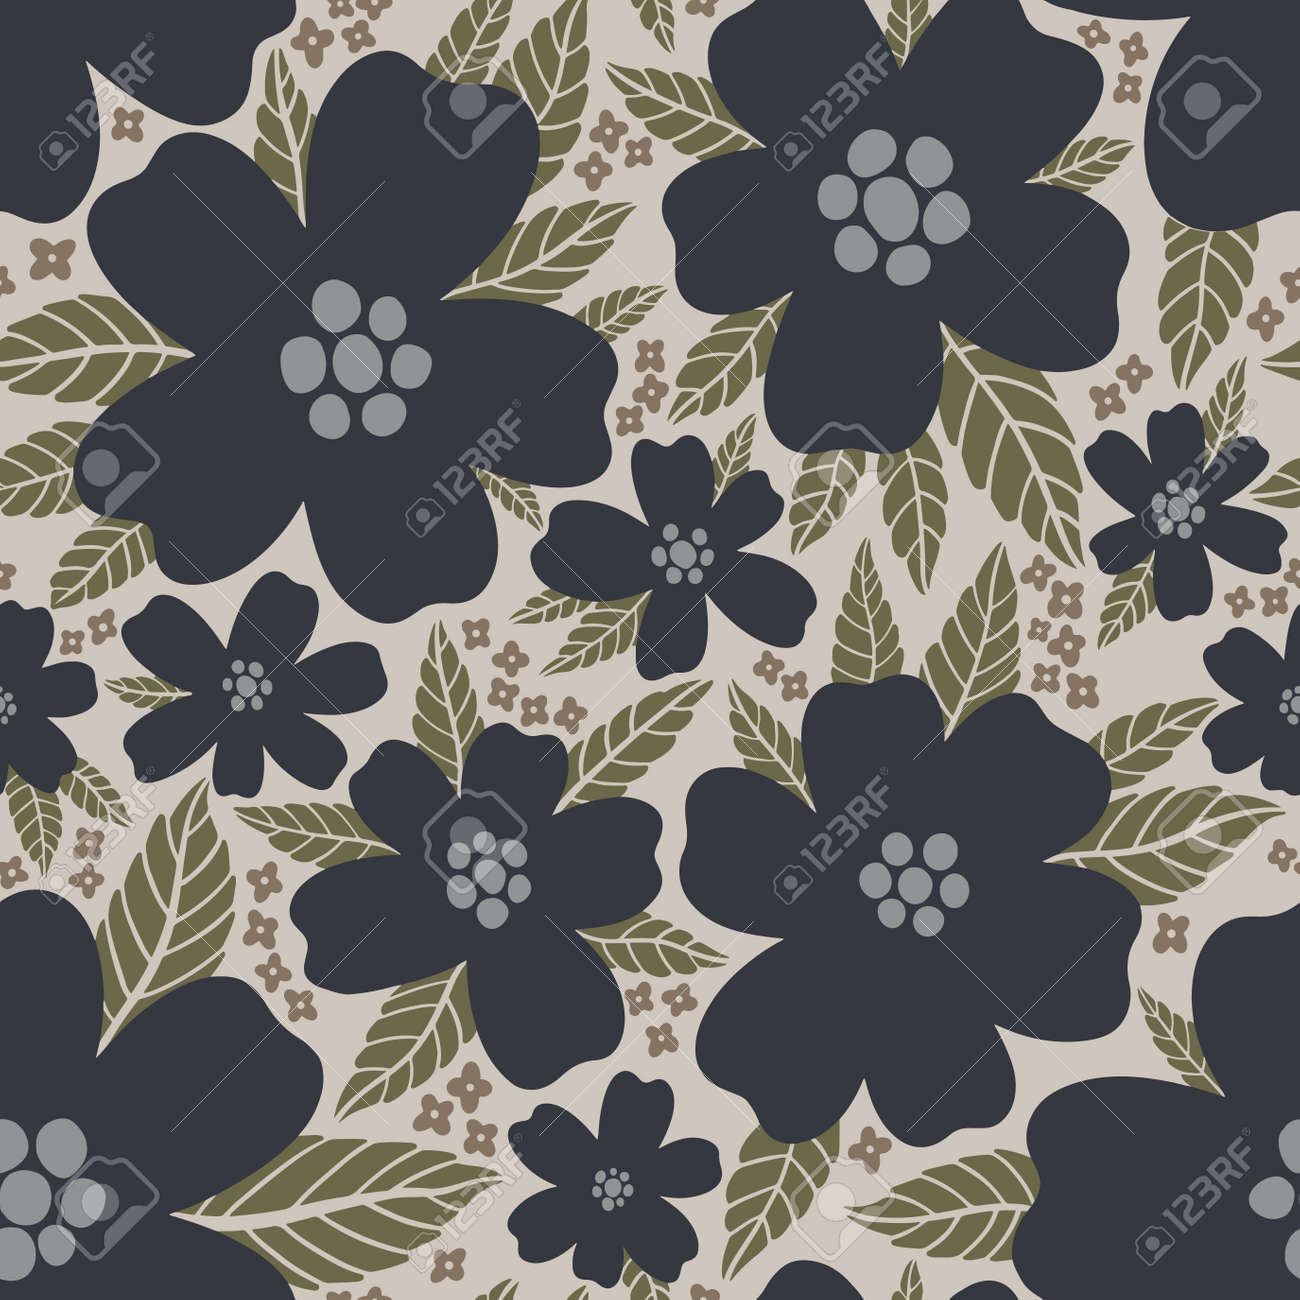 Seamless pattern floral flower abstract.Botanical vintage nature background.Print fashion textile. - 171023076